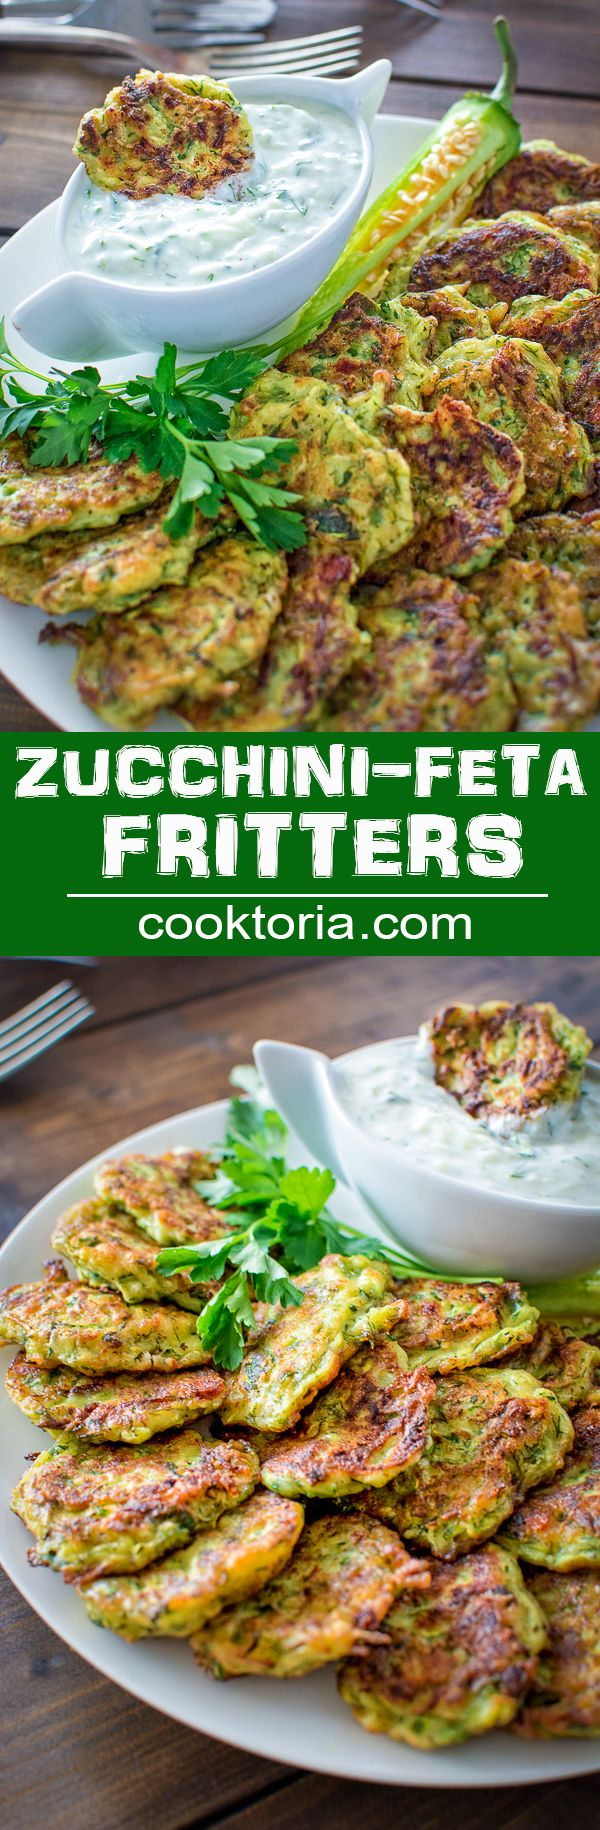 I make these healthy Zucchini Feta Fritters almost every single week! They are so delicious and tender, and they pair so well with Tzatziki sauce! ❤ COOKTORIA.COM